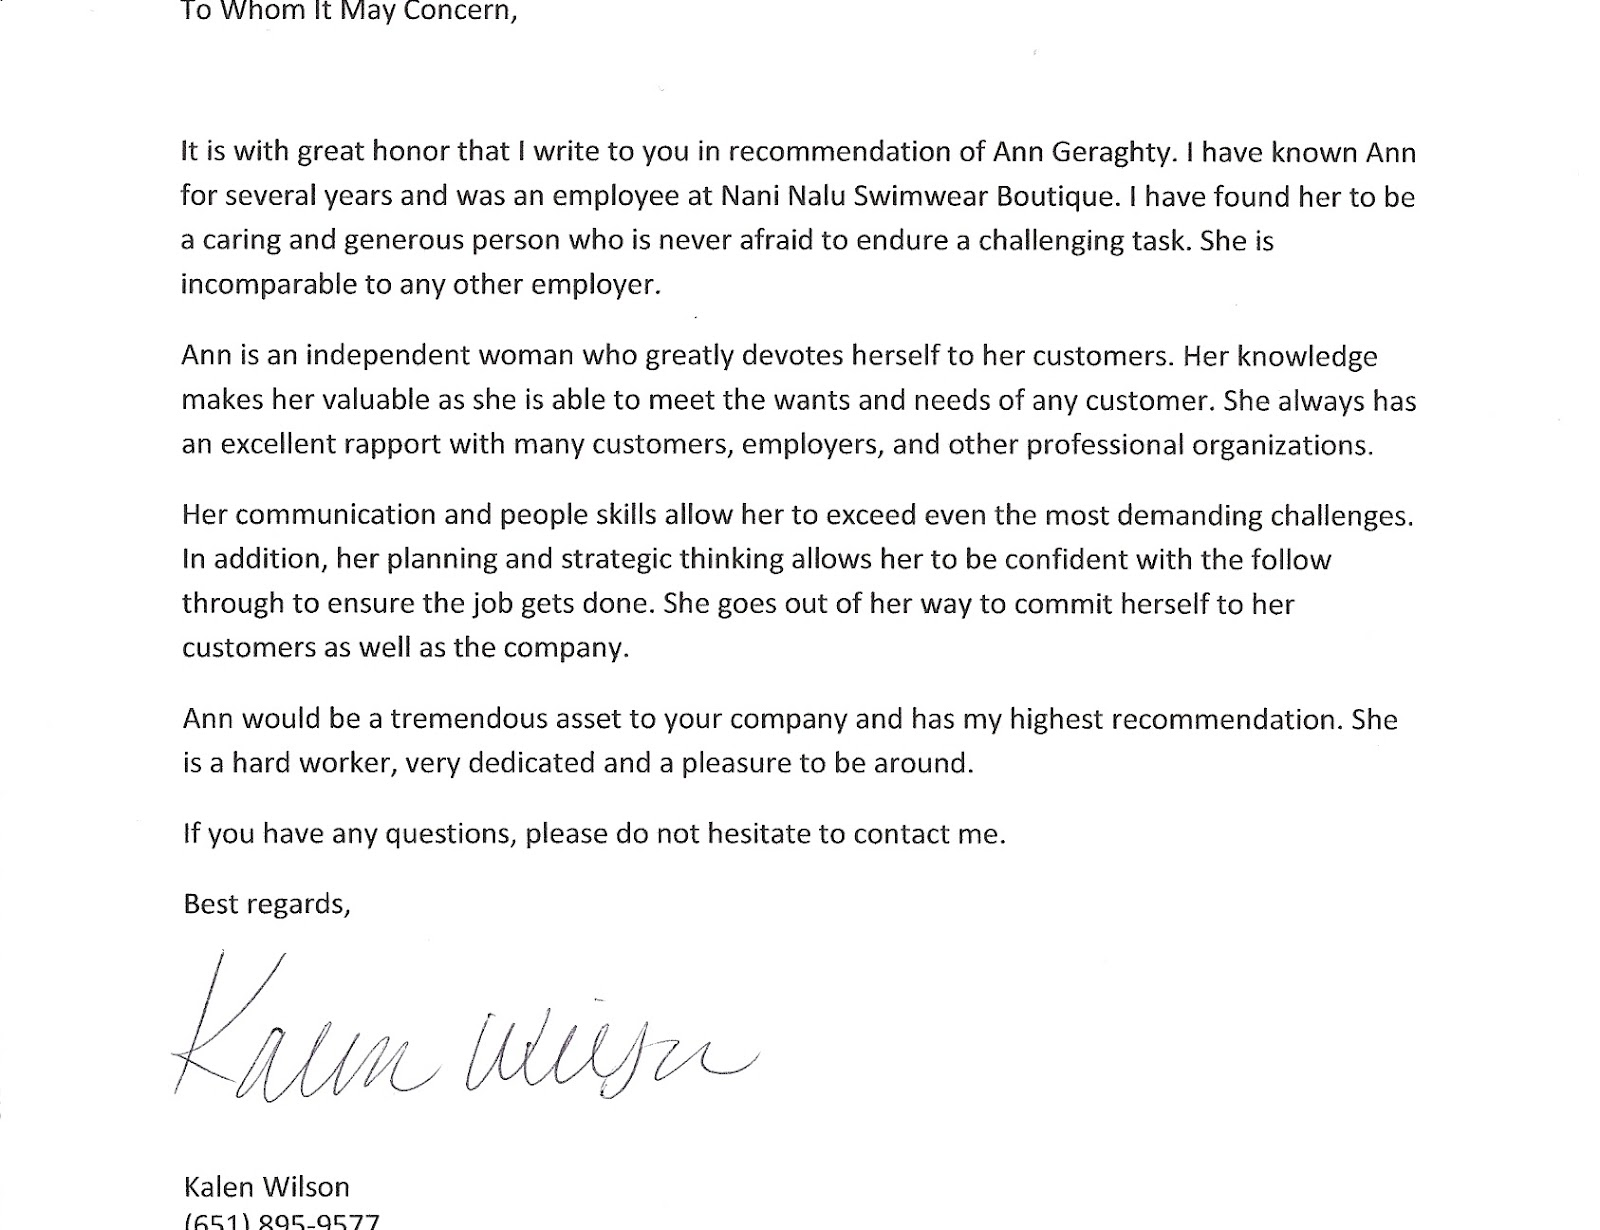 Letter Of Recommendation For Sales Manager - Sales Manager Cover